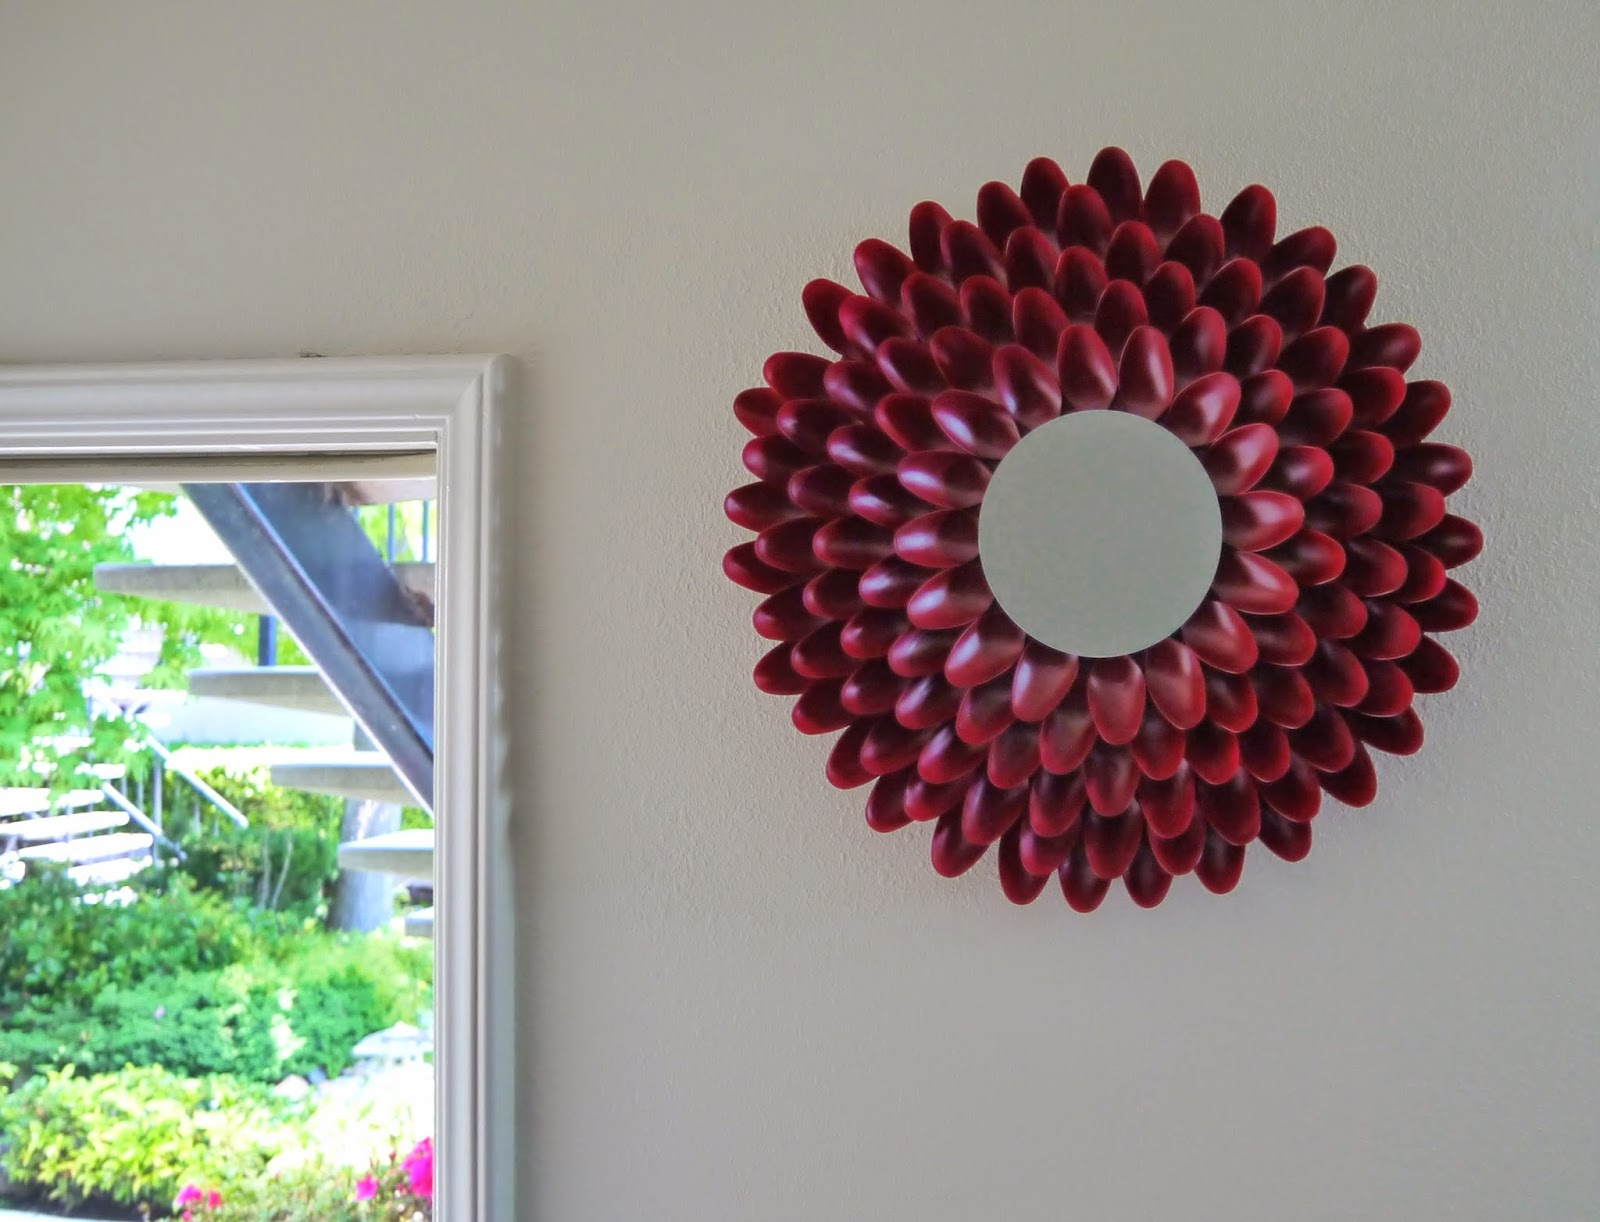 Diy addiction mirror wall art chrysanthemum flower - Images of wall decoration ...